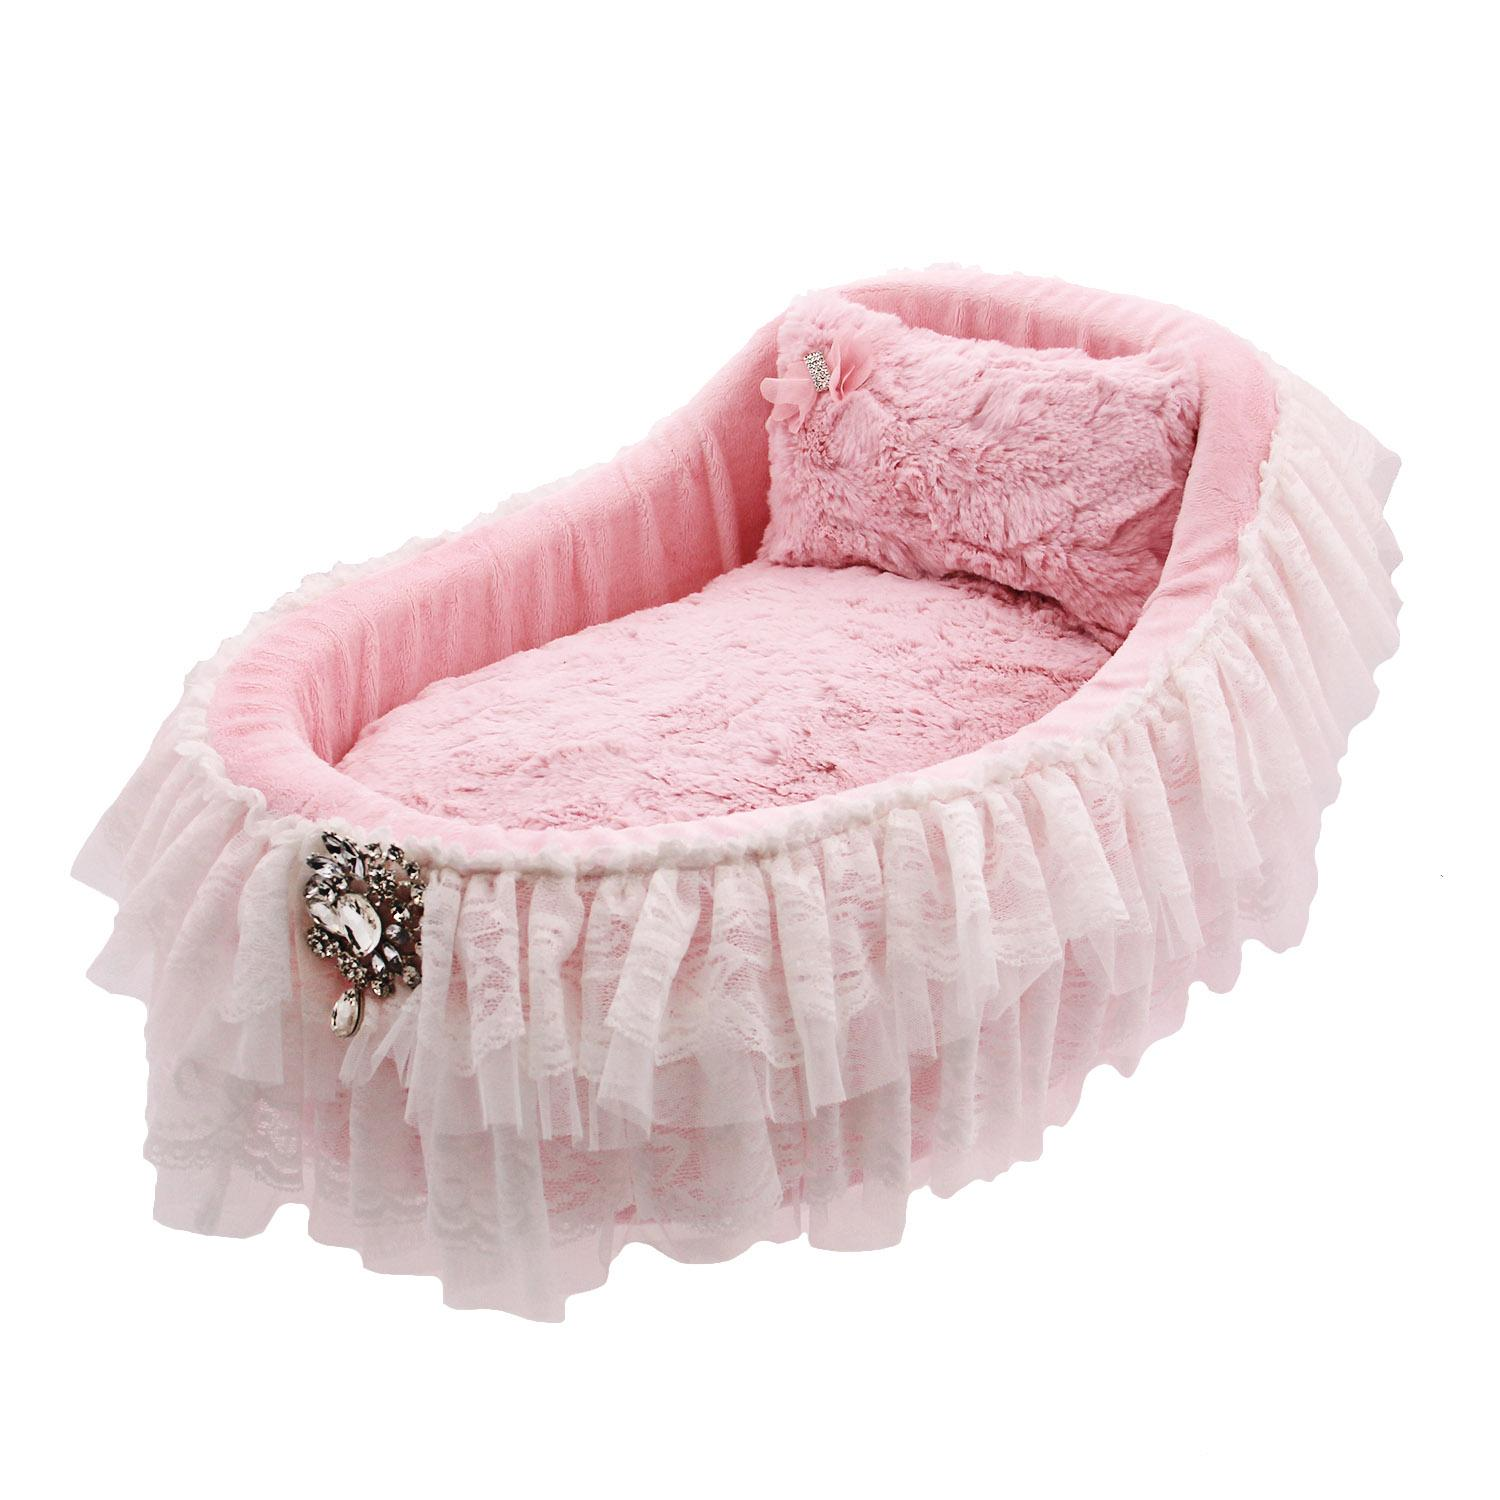 Hello Doggie Crib Collection Pet Bed - Baby Doll